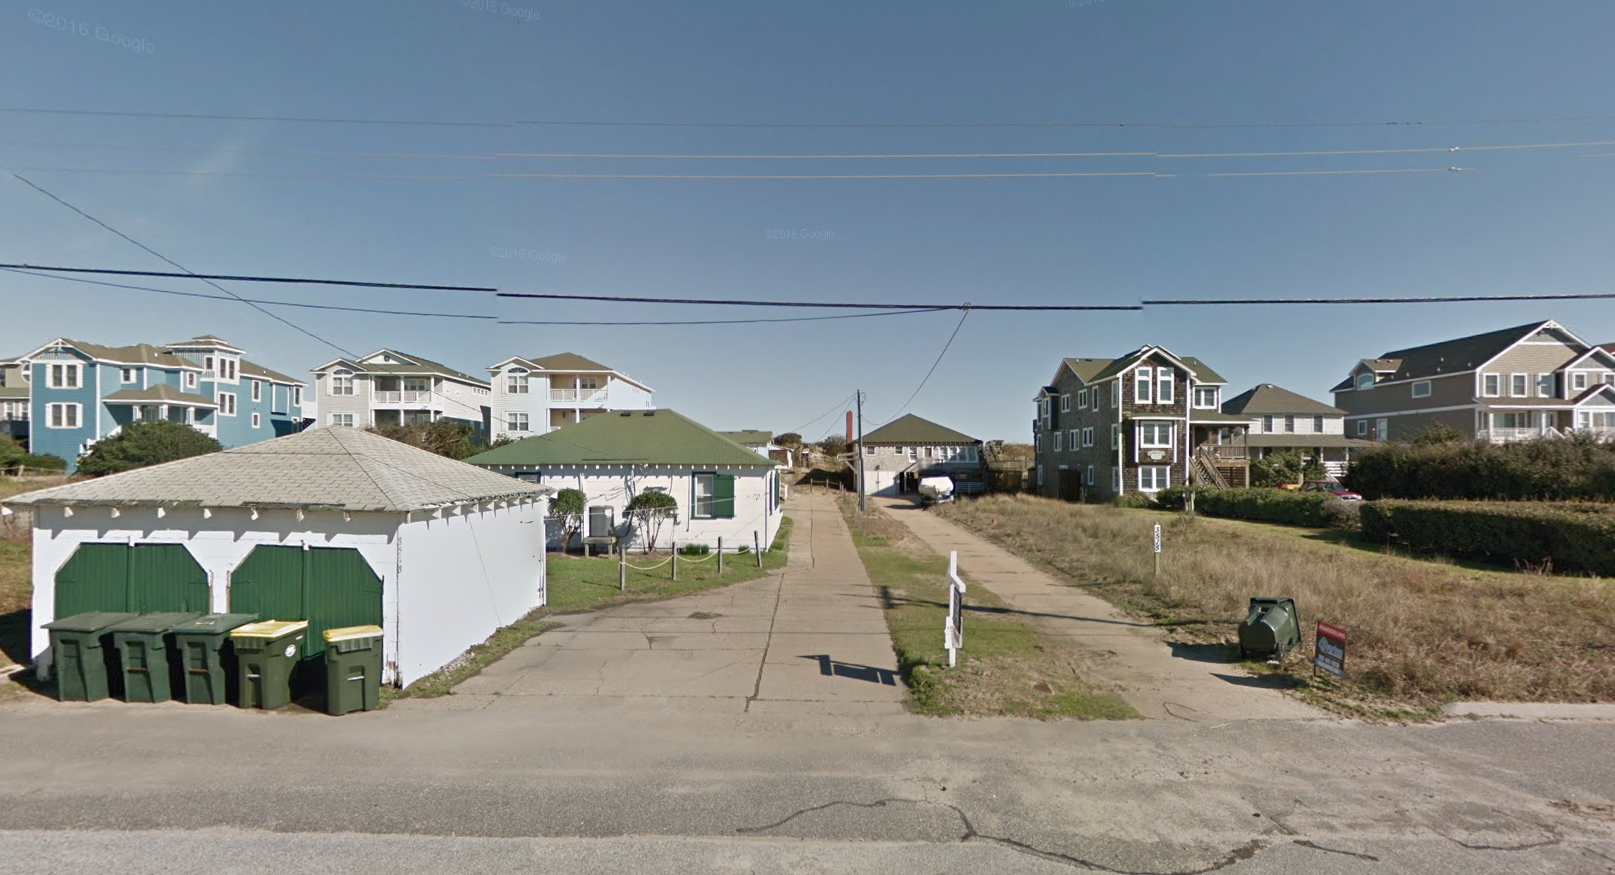 stan outer the cottages white construction happy about booking clam realty banks